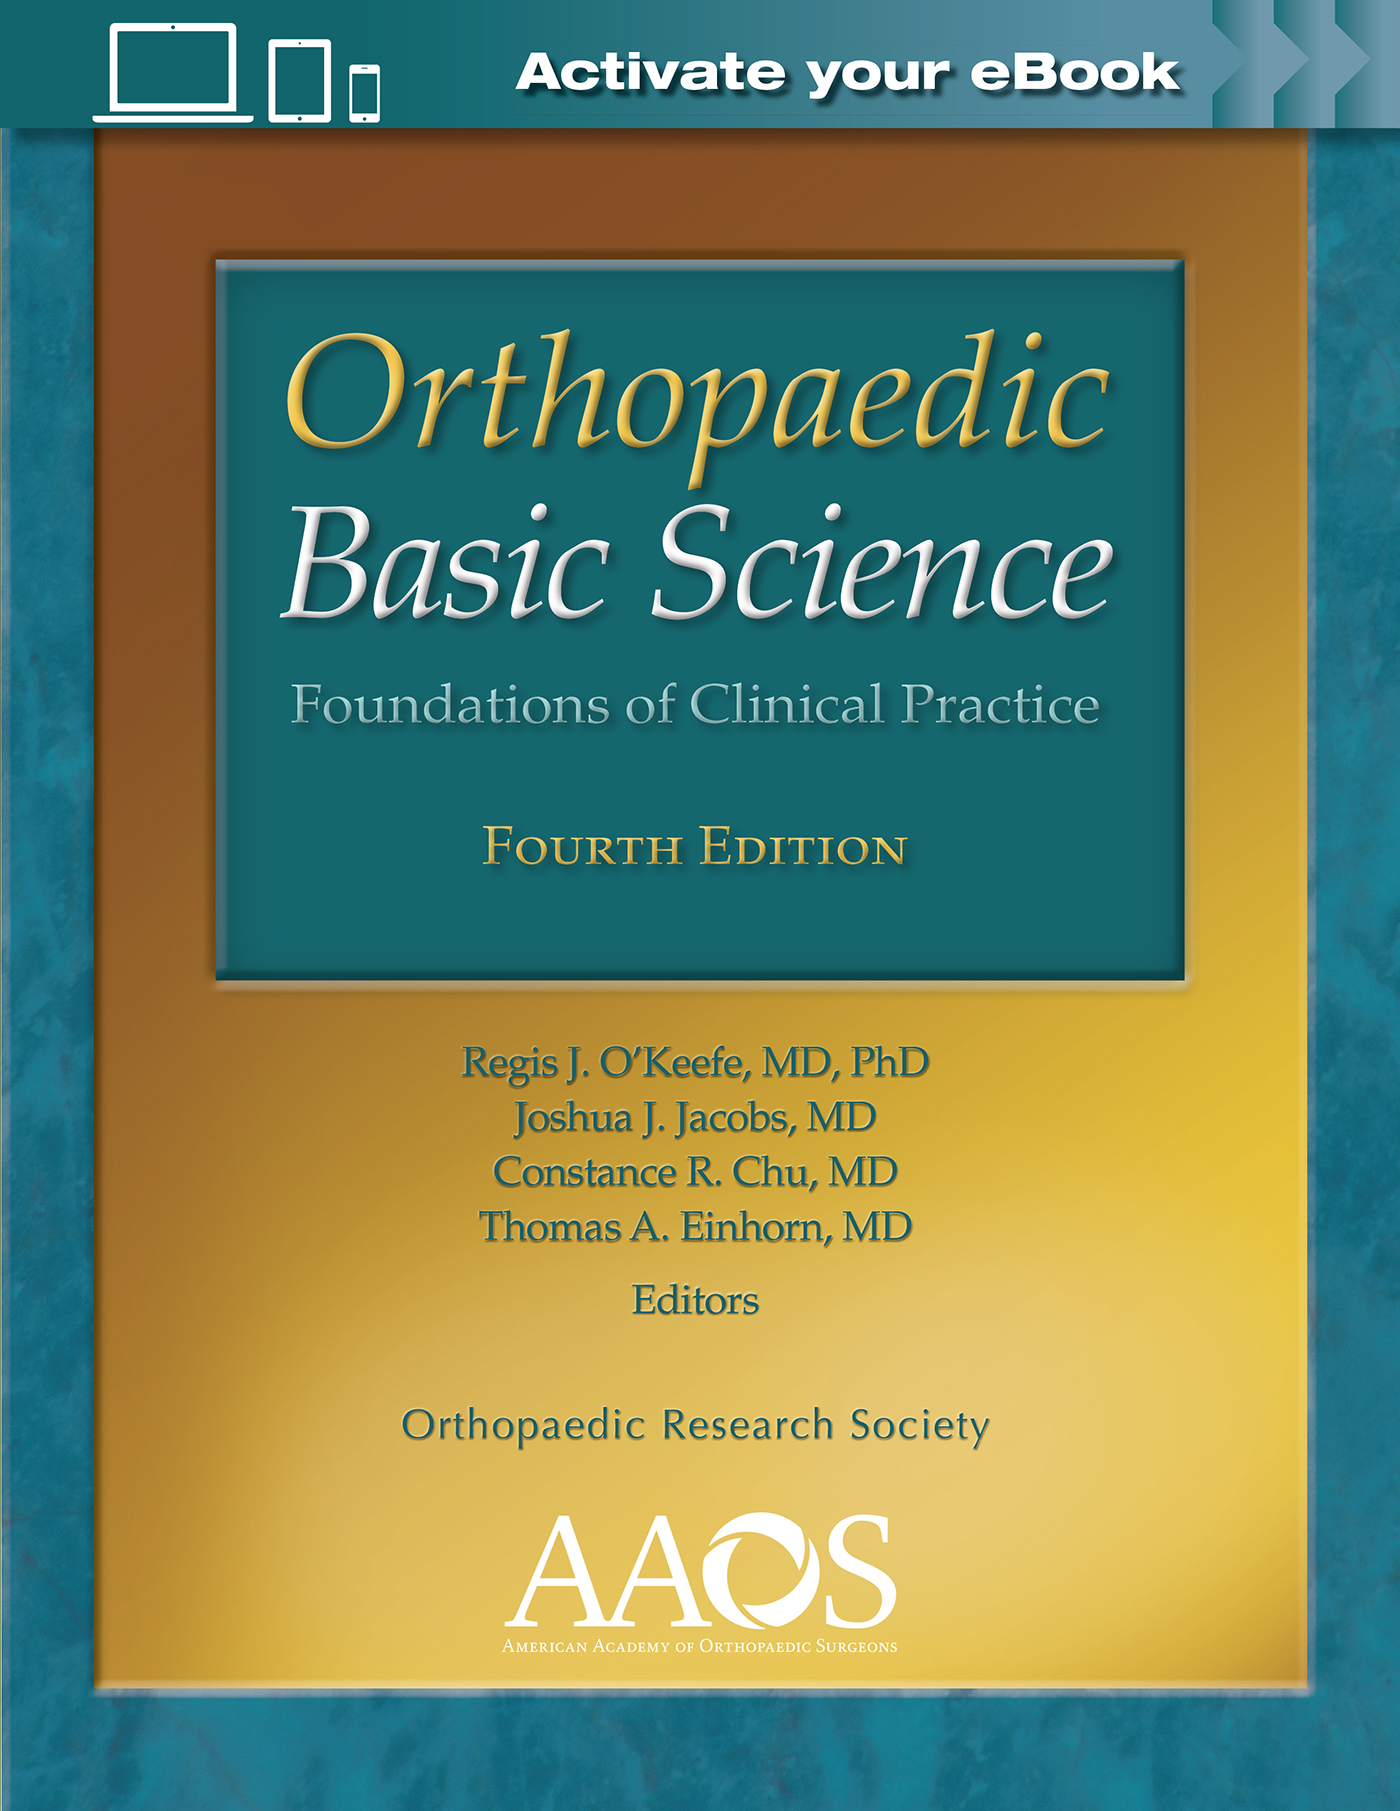 Orthopaedic Basic Science: Foundations of Clinical Practice